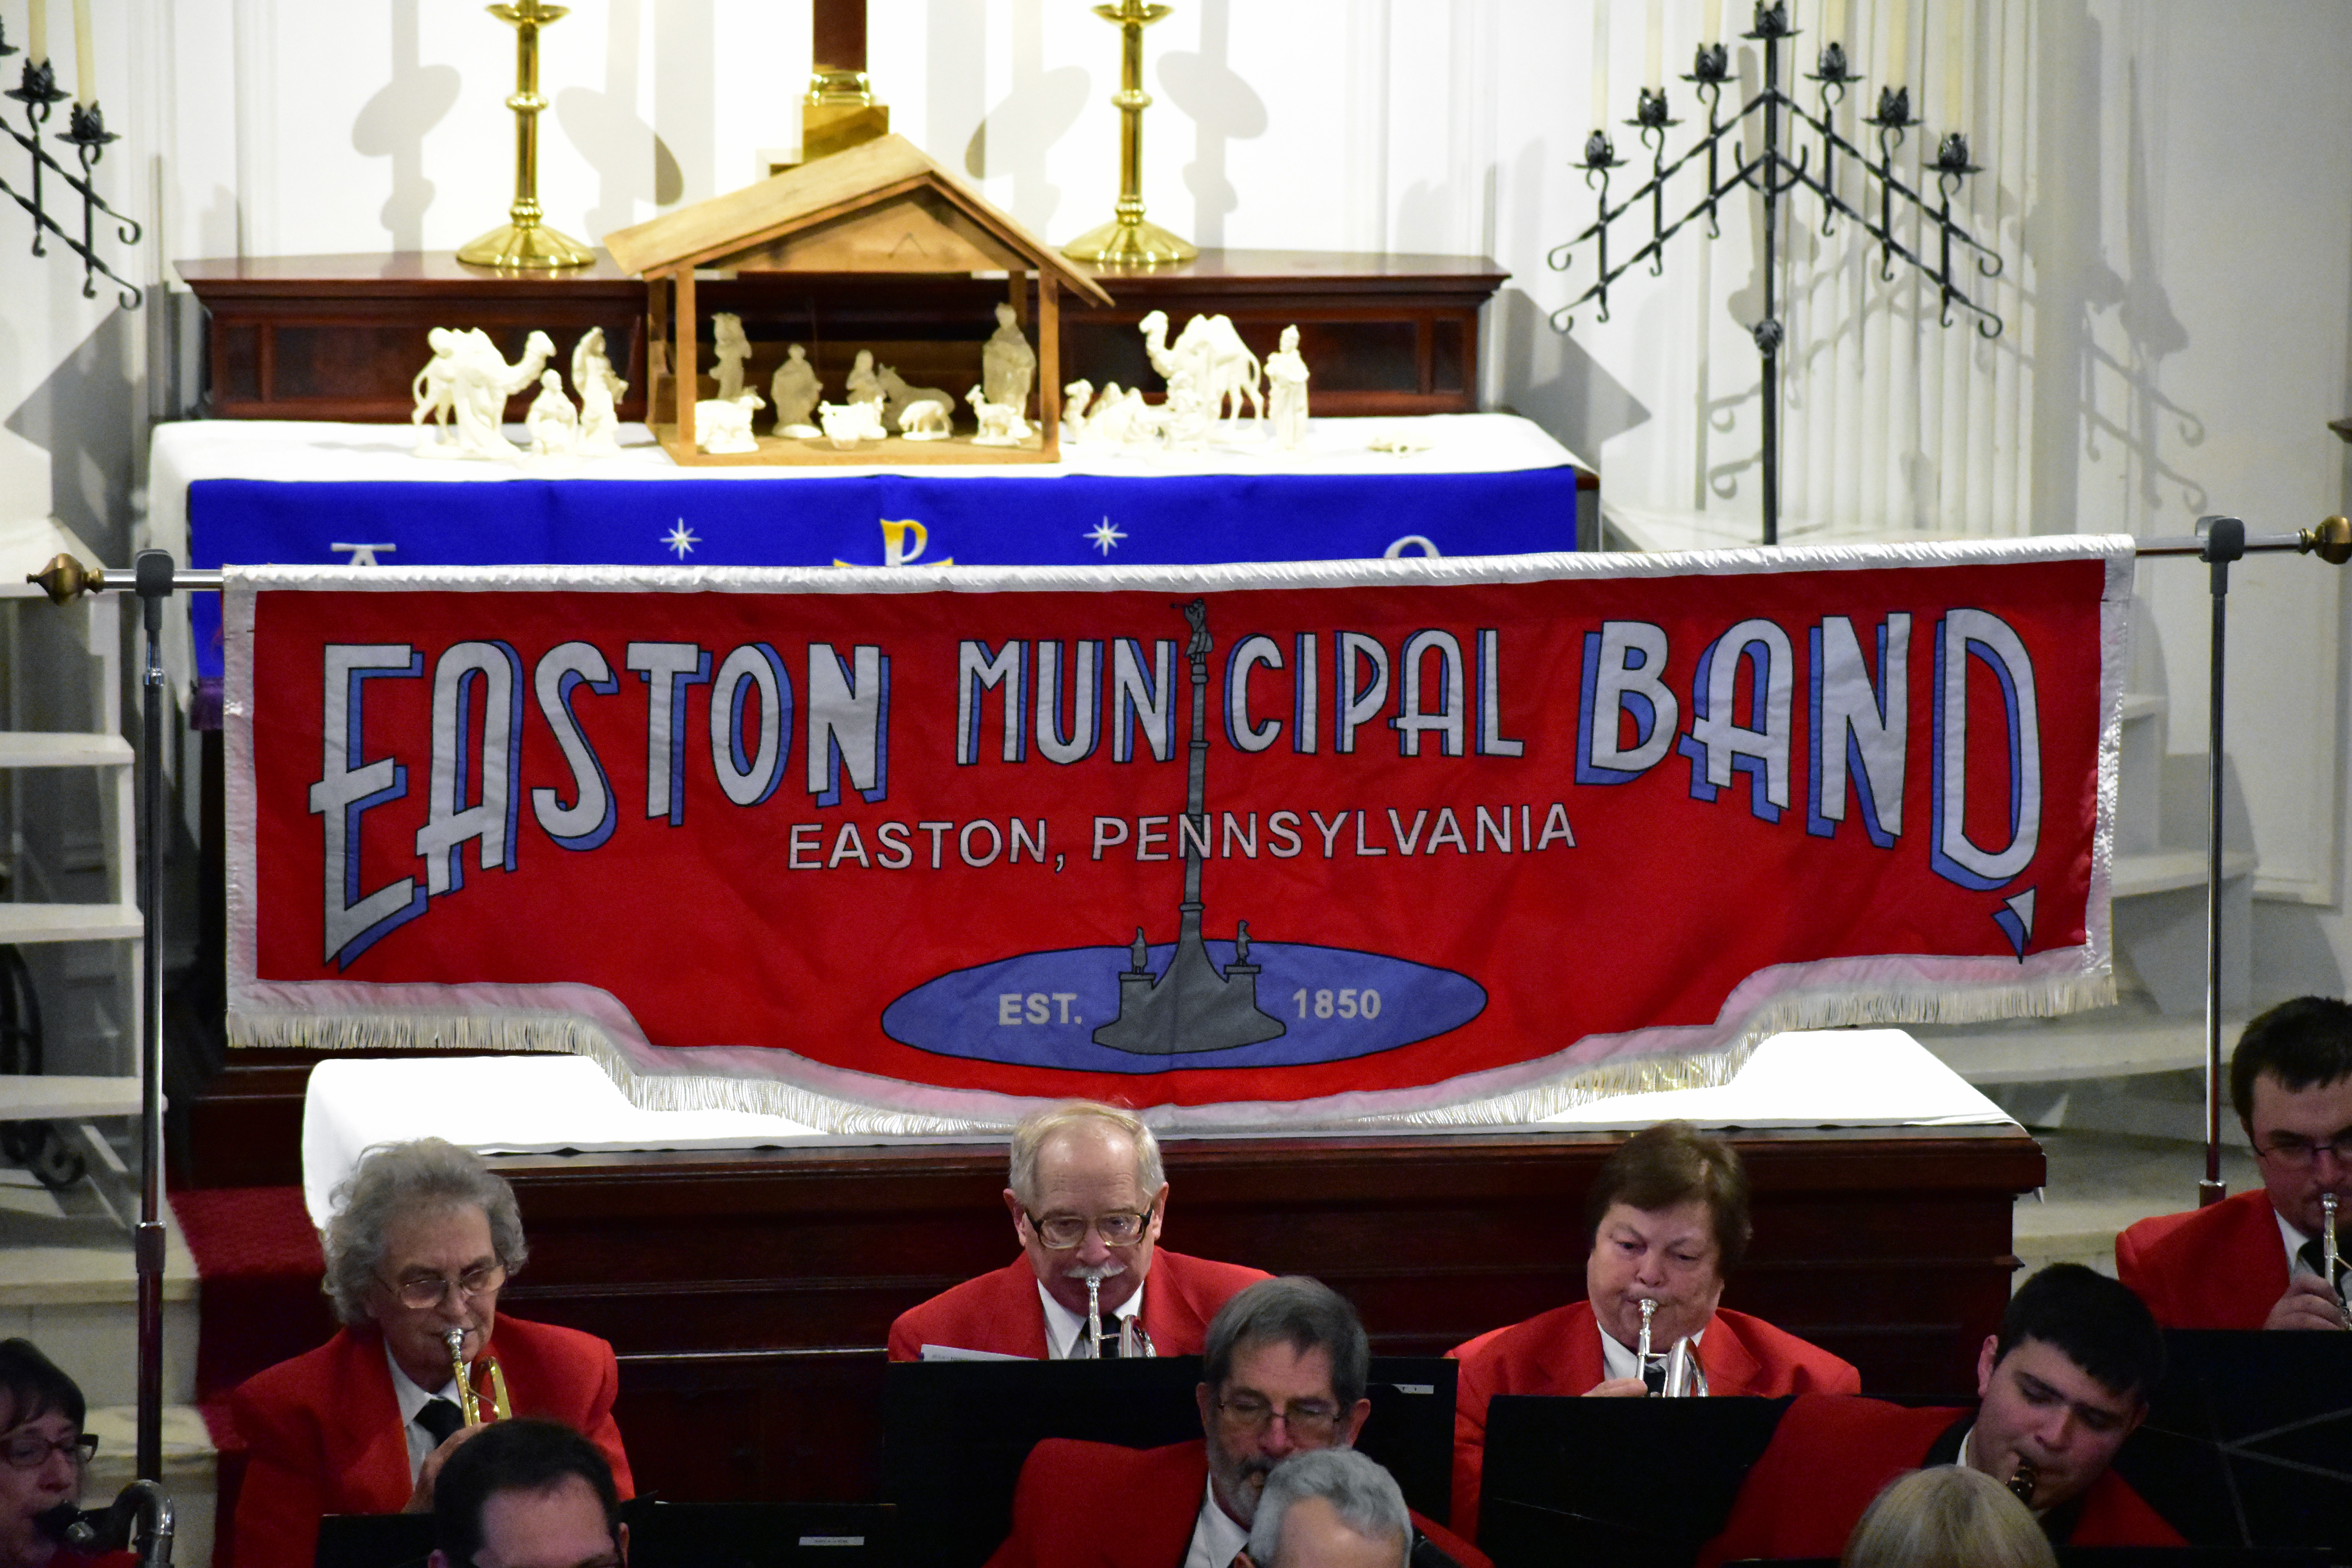 Easton Municipal Band, Holiday Concert 2017